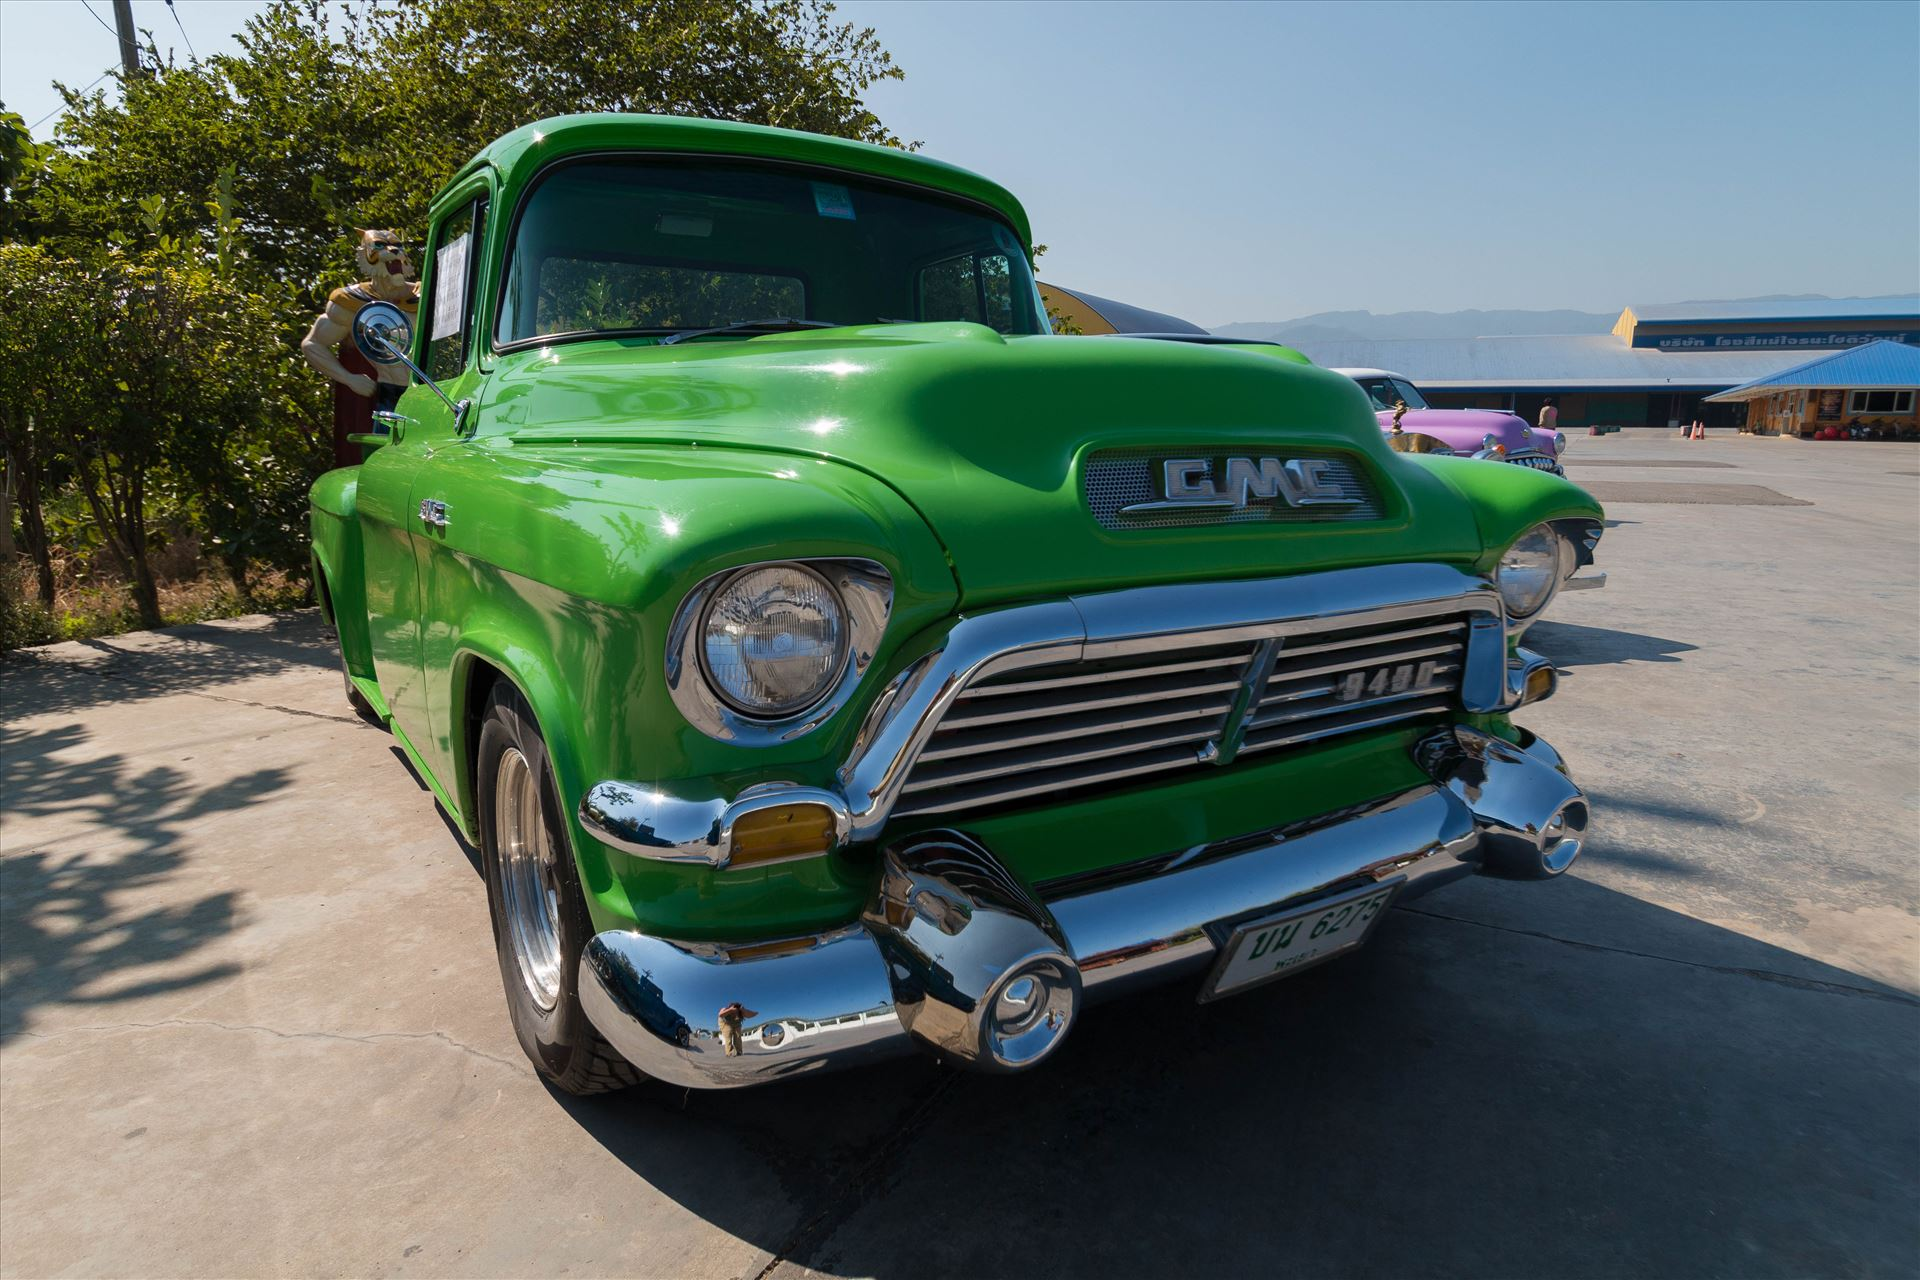 1956 GMC Pickup -  by AnnetteJohnsonPhotography